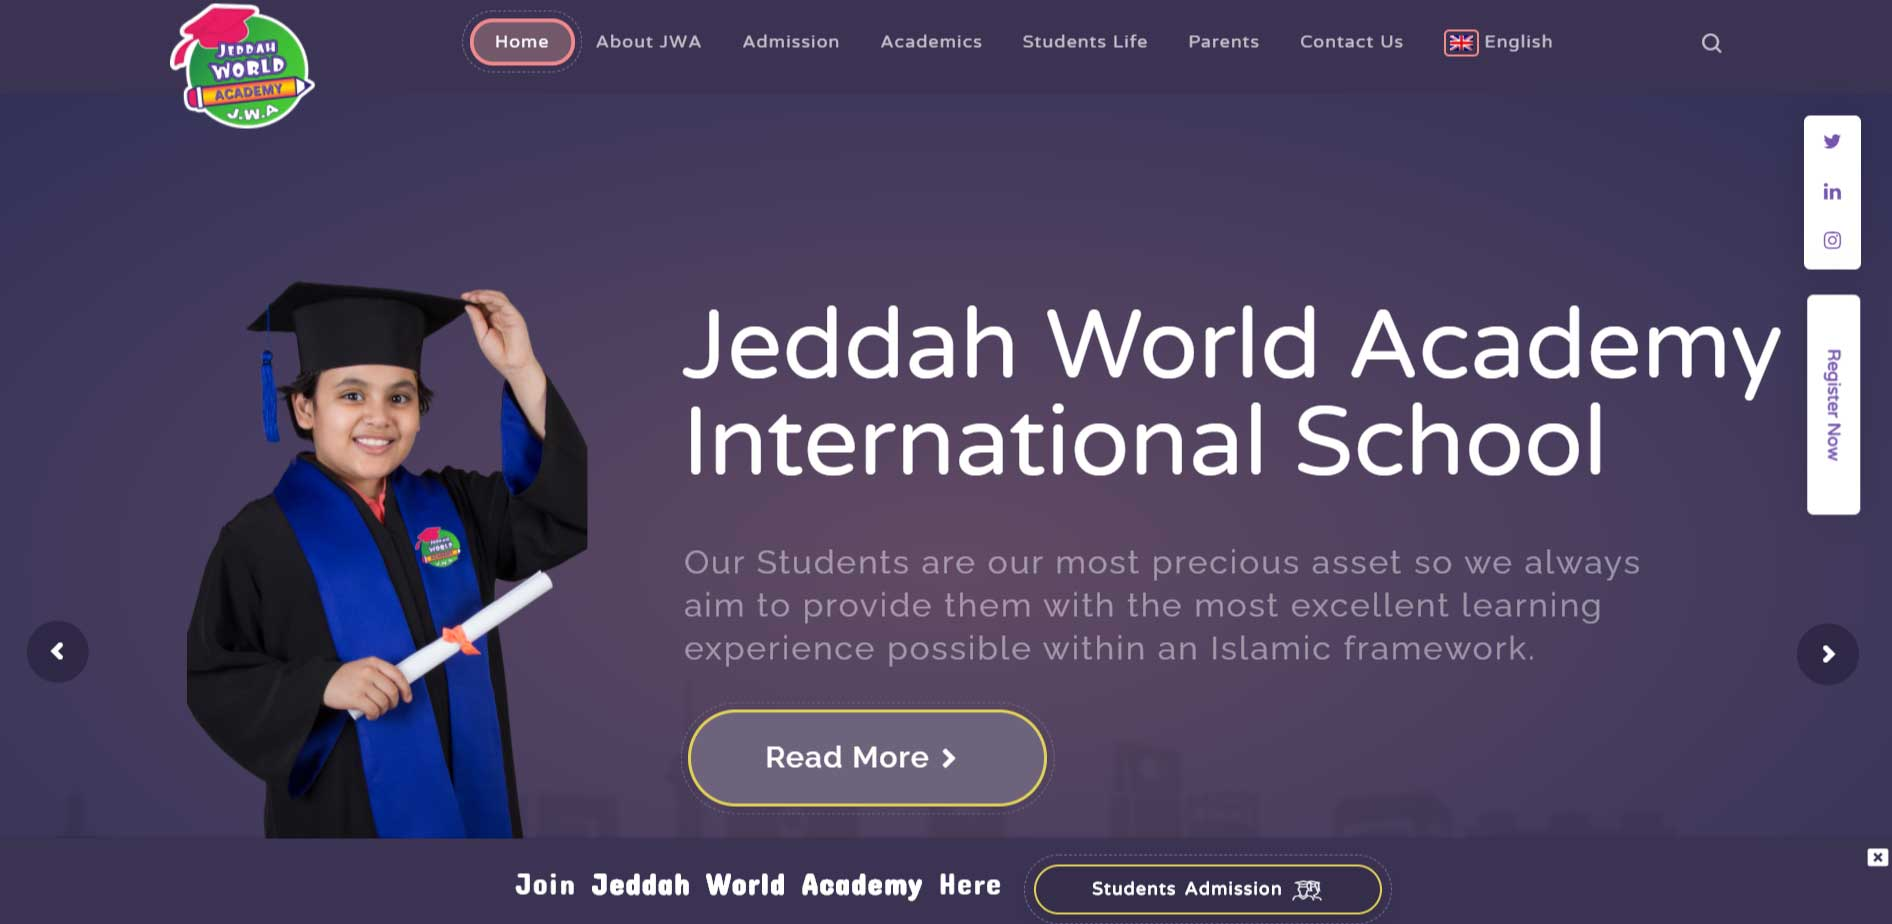 Jeddah World Academy Website